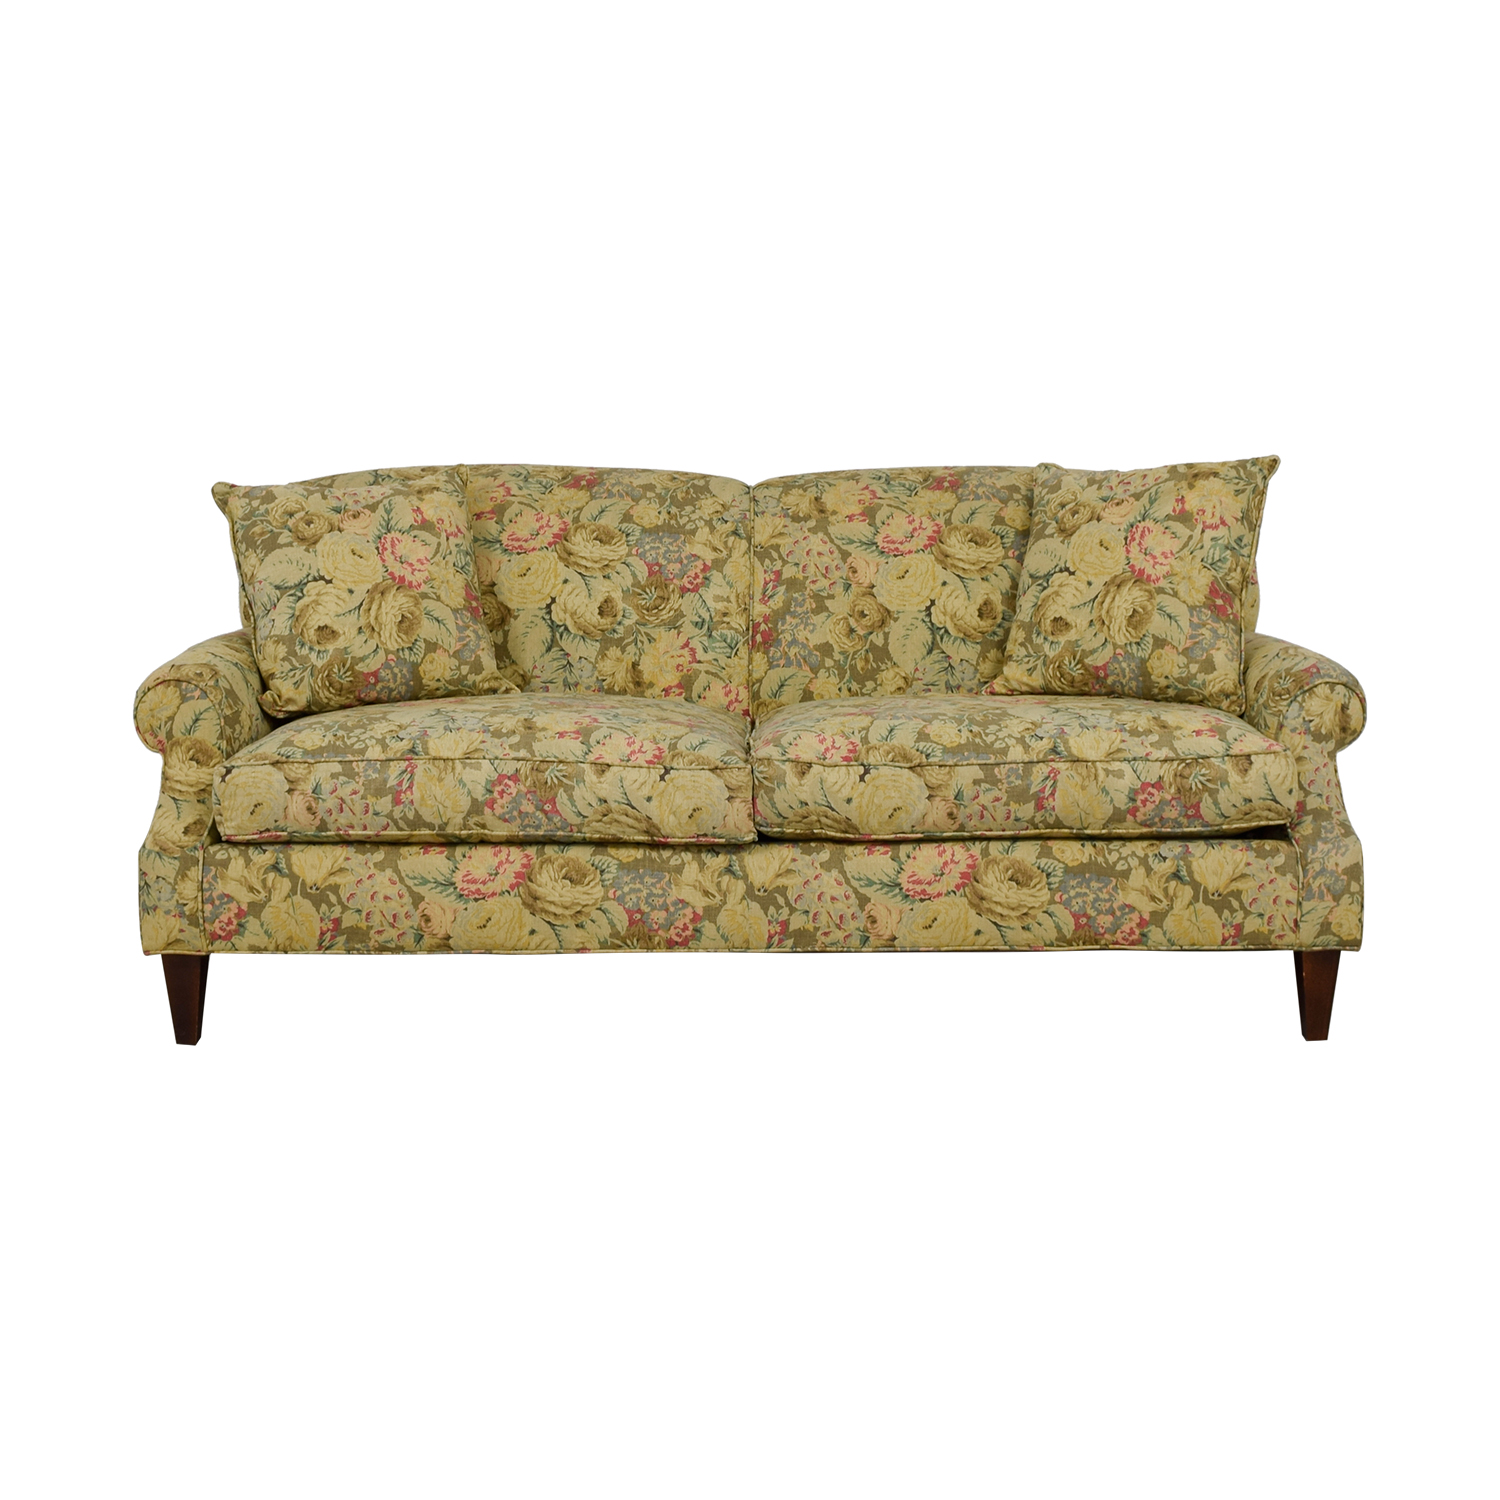 Crate & Barrel Crate & Barrel English Tight-back Roll Arm Sofa with Throw Pillows nyc